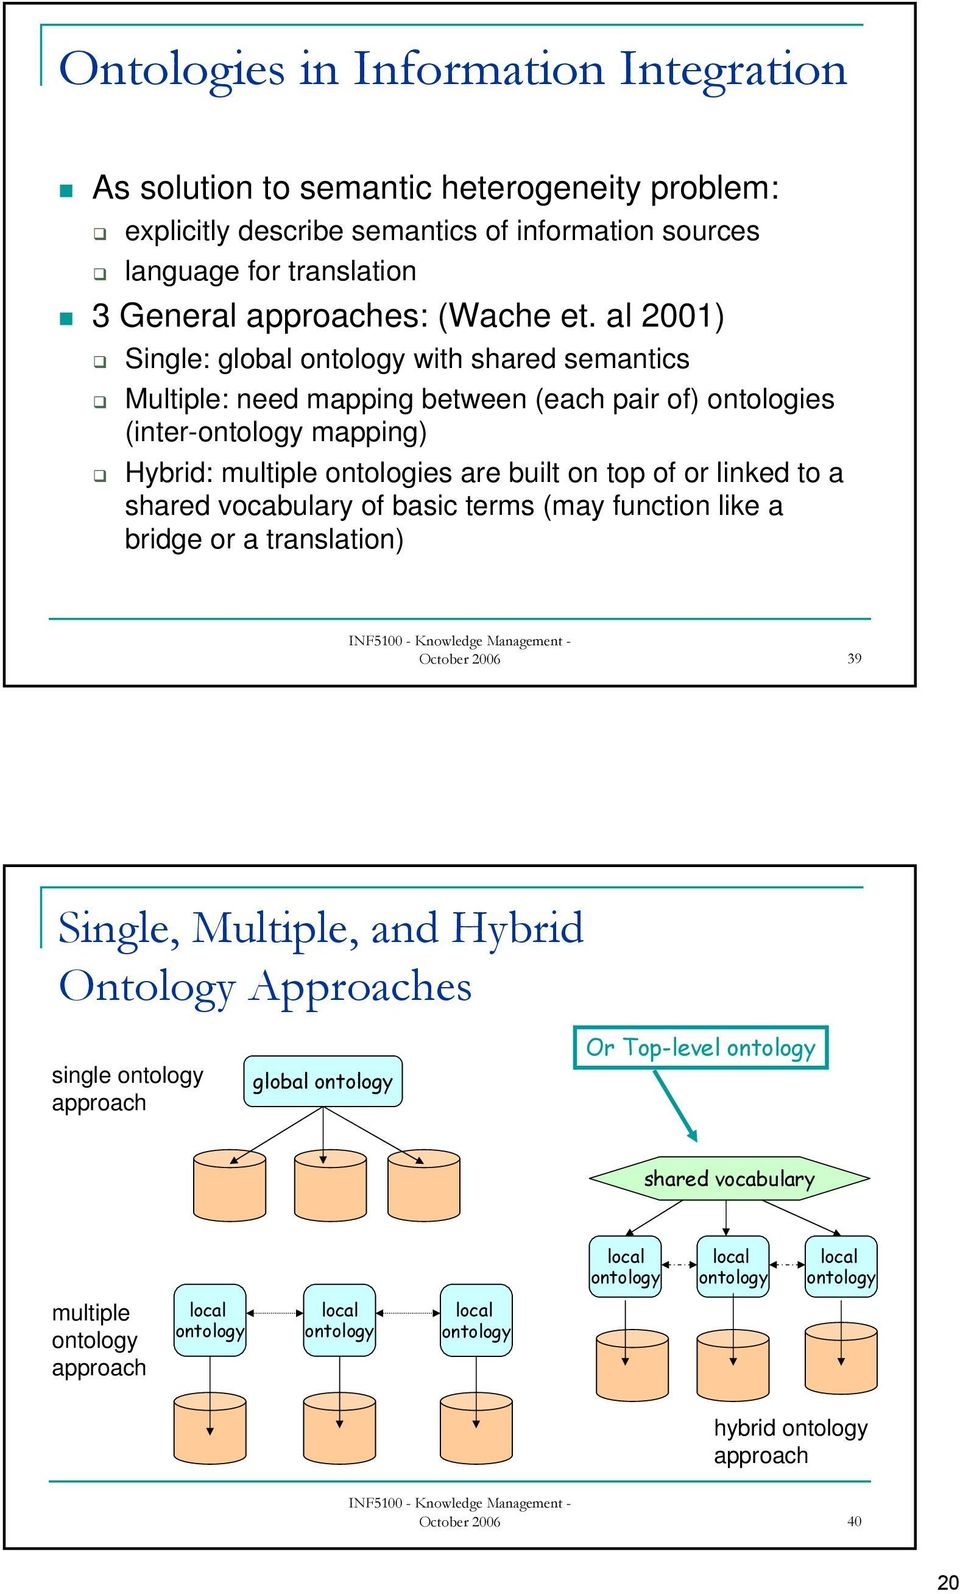 to a shared vocabulary of basic terms (may function like a bridge or a translation) October 2006 39 Single, Multiple, and Hybrid Ontology Approaches single ontology approach global ontology Or